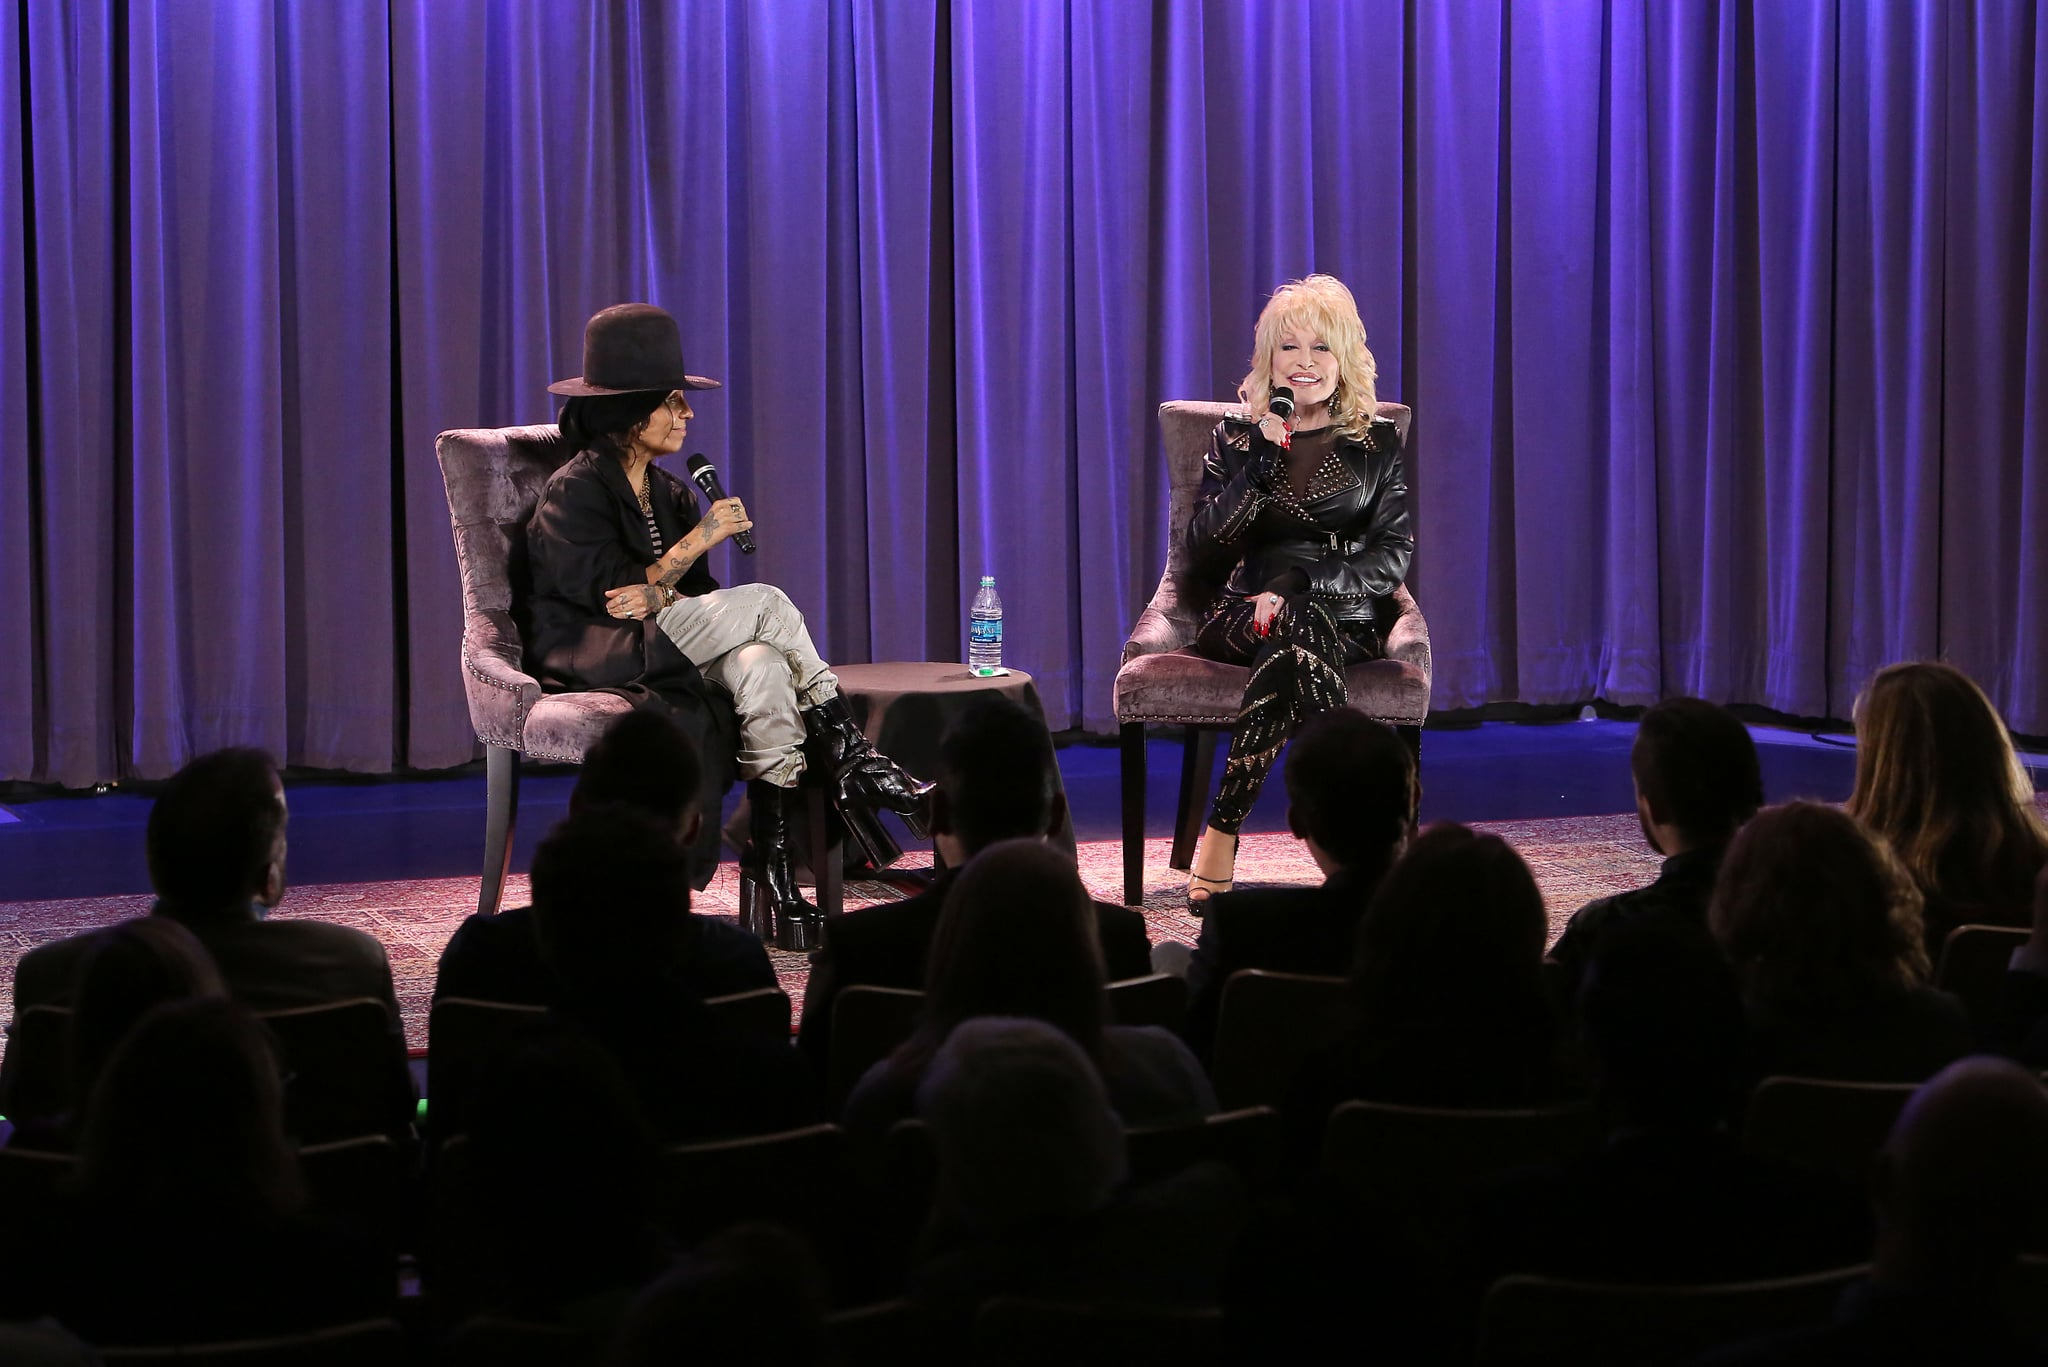 LOS ANGELES, CALIFORNIA - FEBRUARY 04: Linda Perry and Dolly Parton speak onstage during the GRAMMY Museum Town Hall Program With Dolly Parton Moderated By Linda Perry at The GRAMMY Museum on February 04, 2019 in Los Angeles, California. (Photo by Jesse Grant/Getty Images)